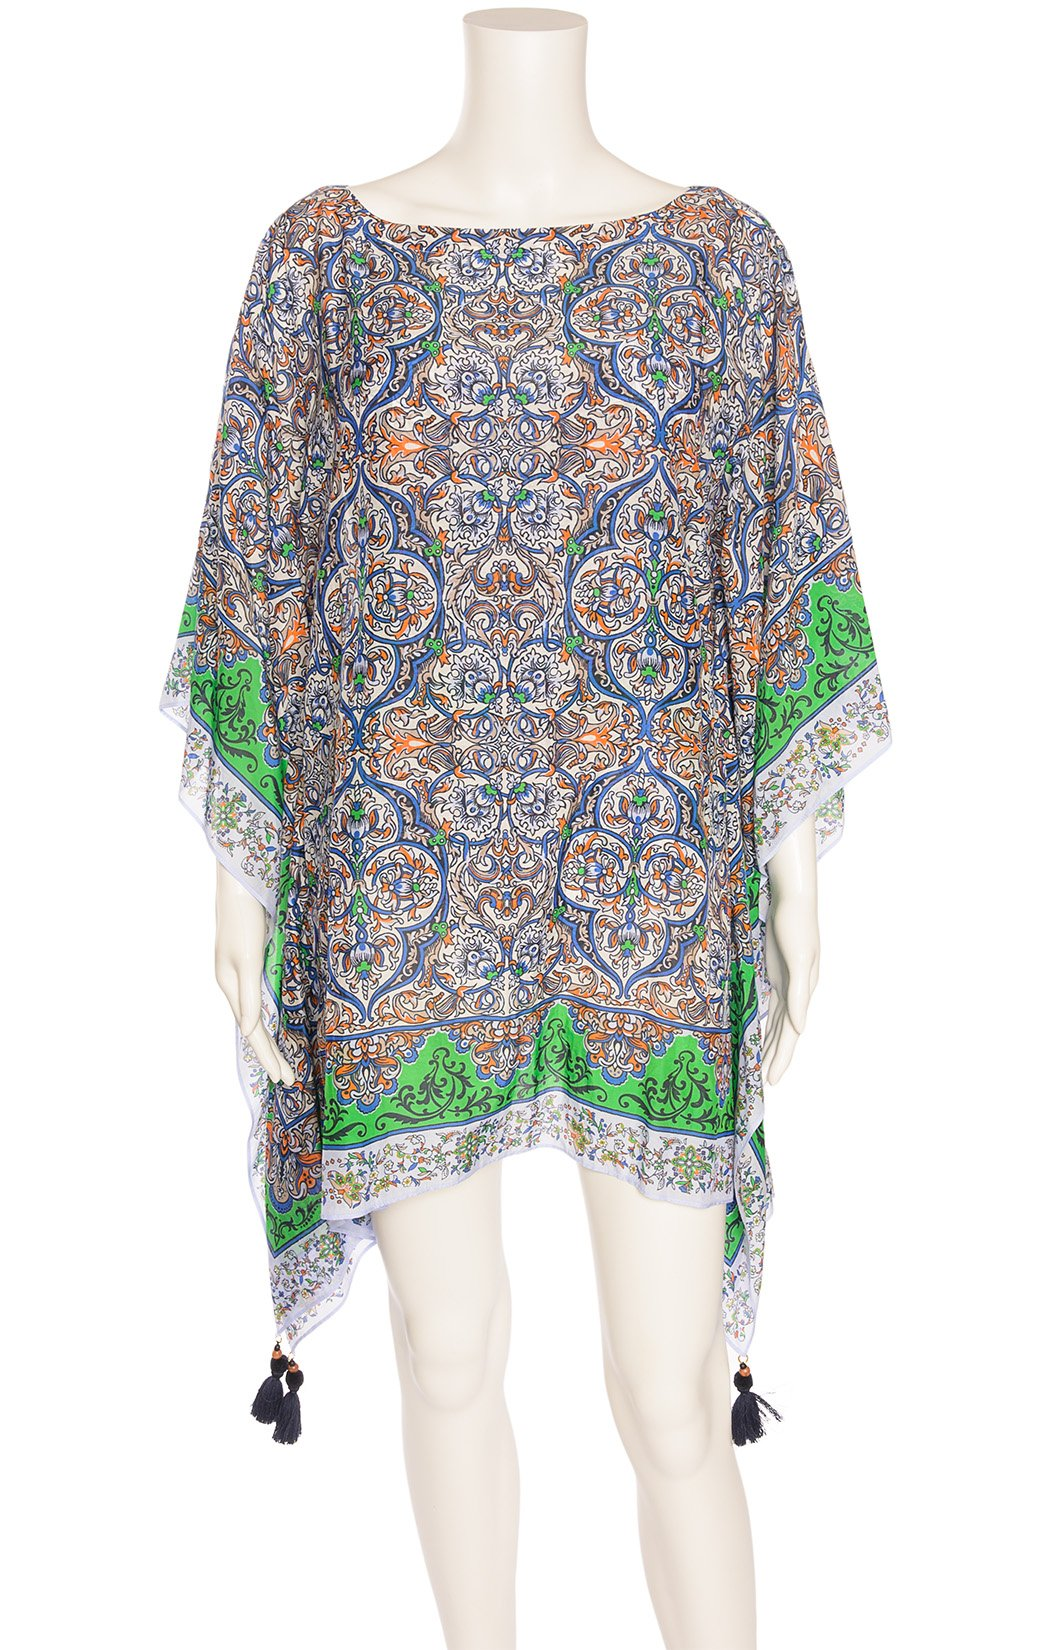 Front view of TORY BURCH with tags cover up Size: M/L